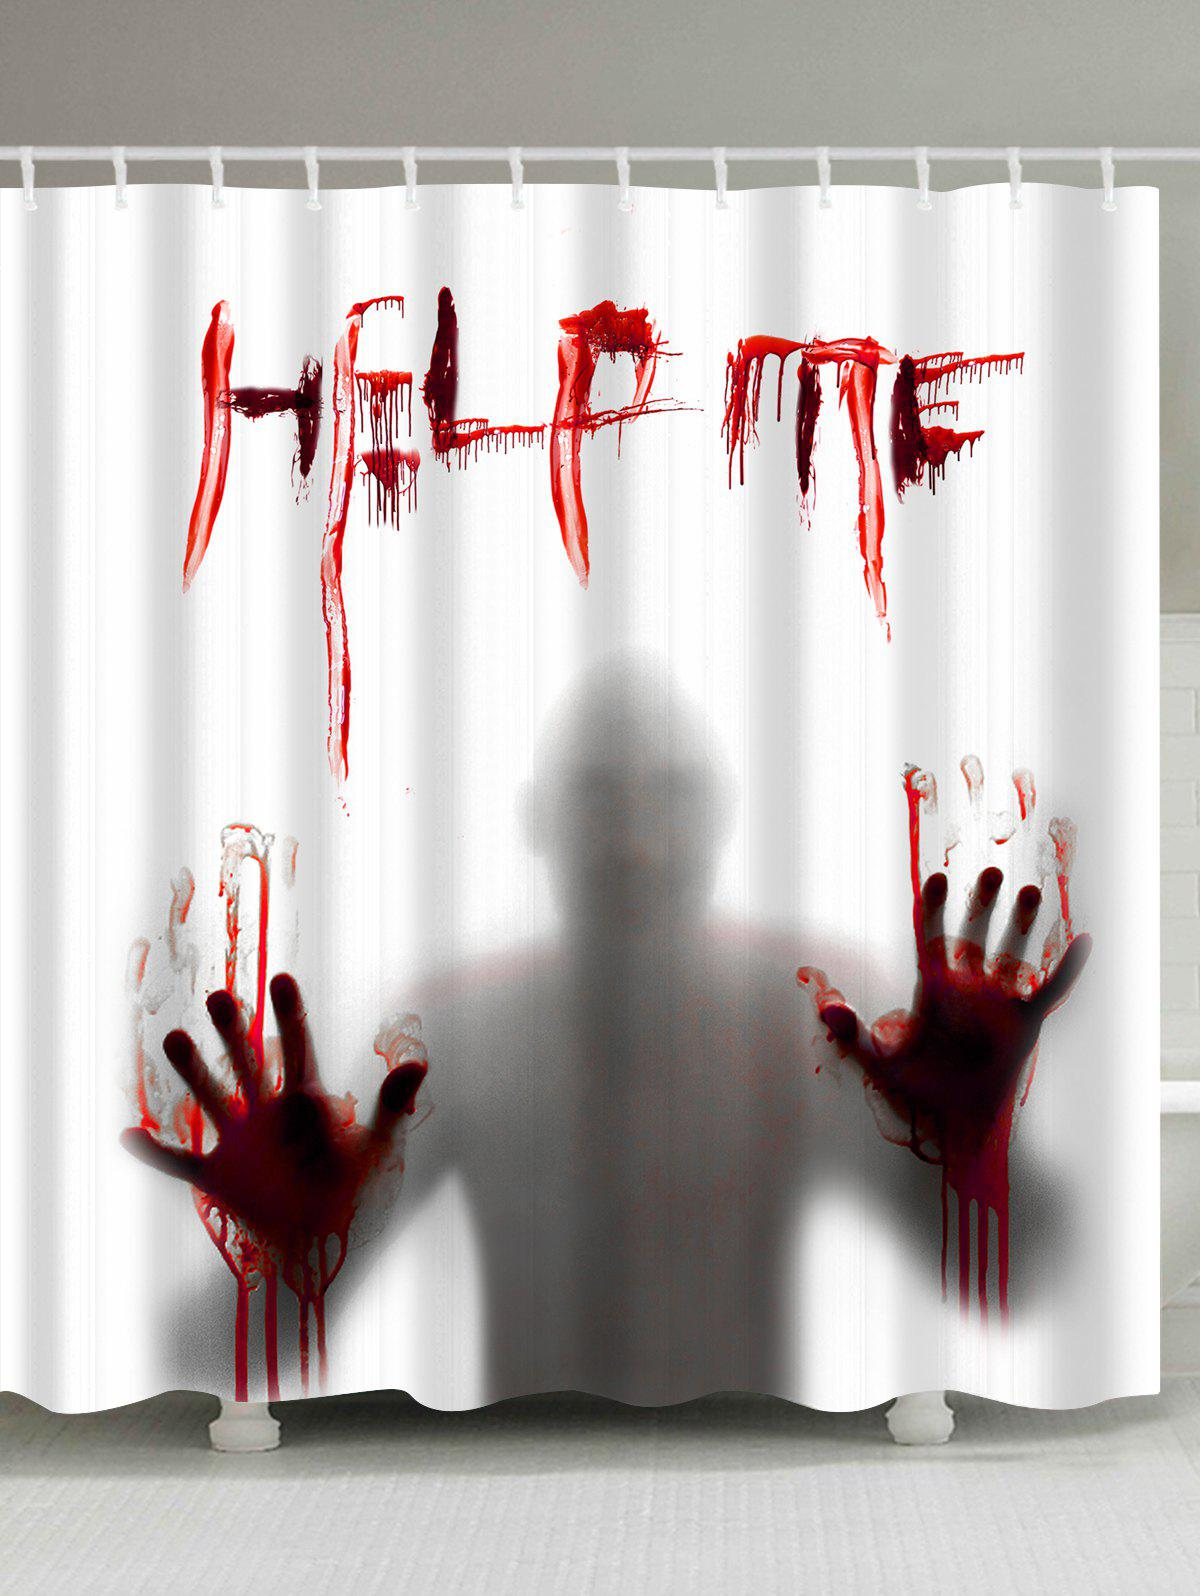 Gothic Help Me Shadow Halloween Decor Shower Curtain